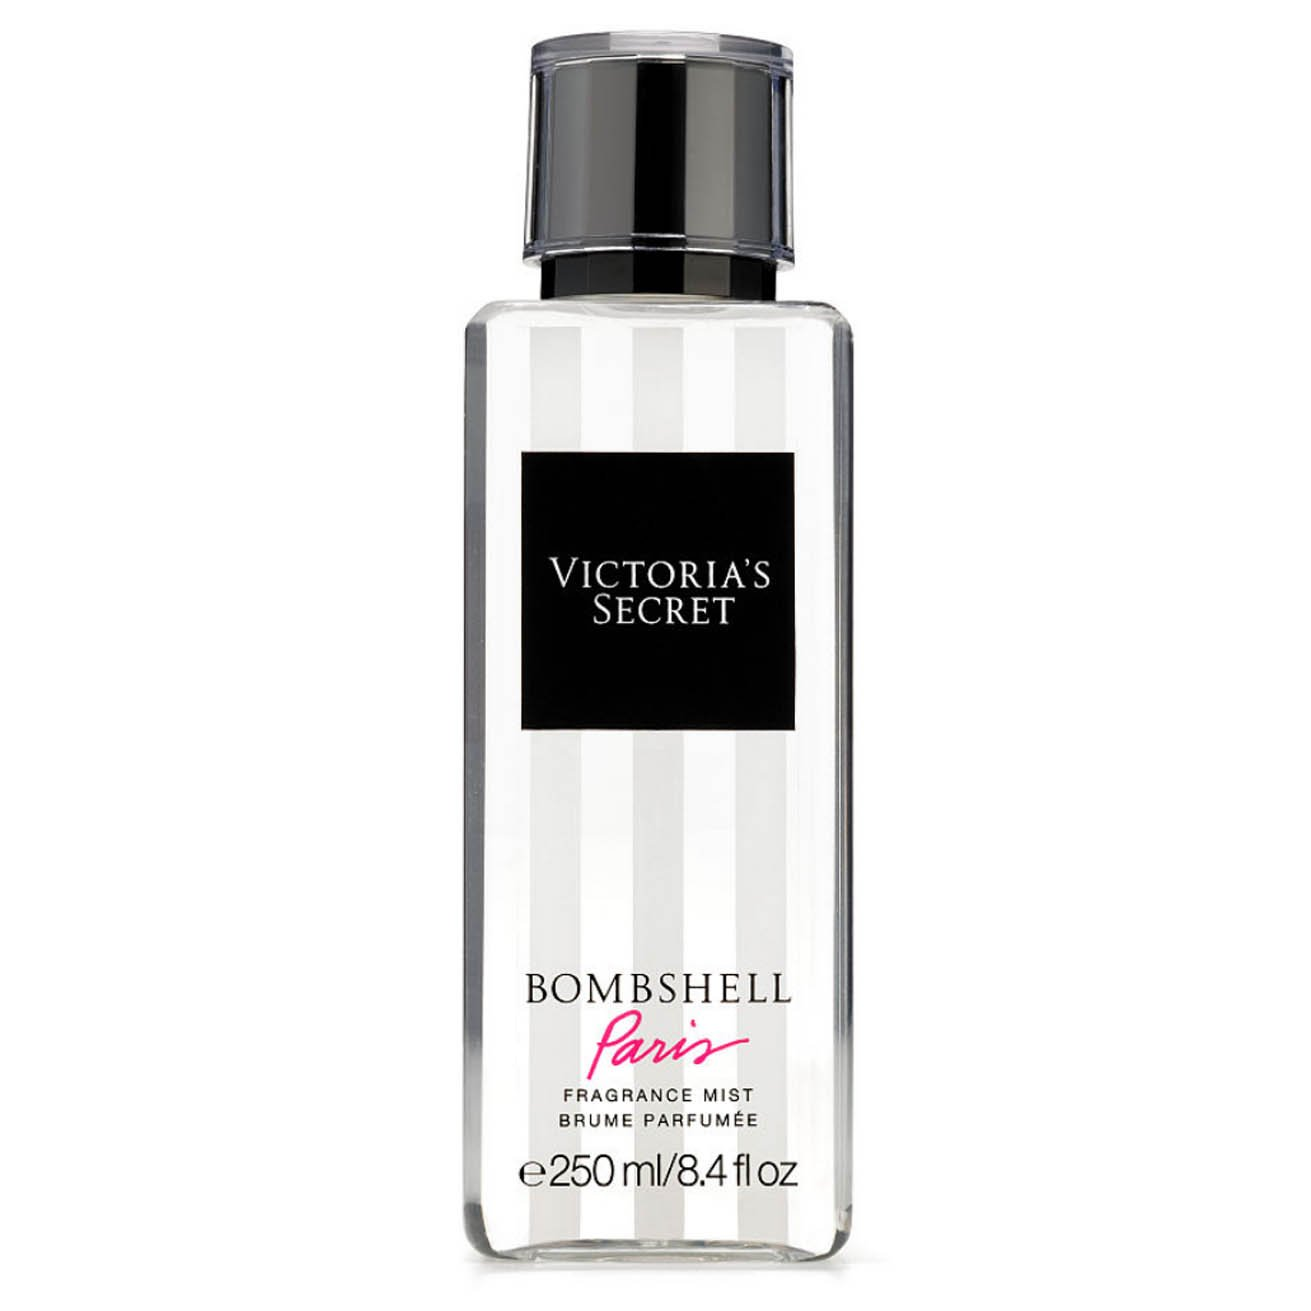 Victoria's Secret Bombshell Paris Fragrance Body Mist 8.4oz